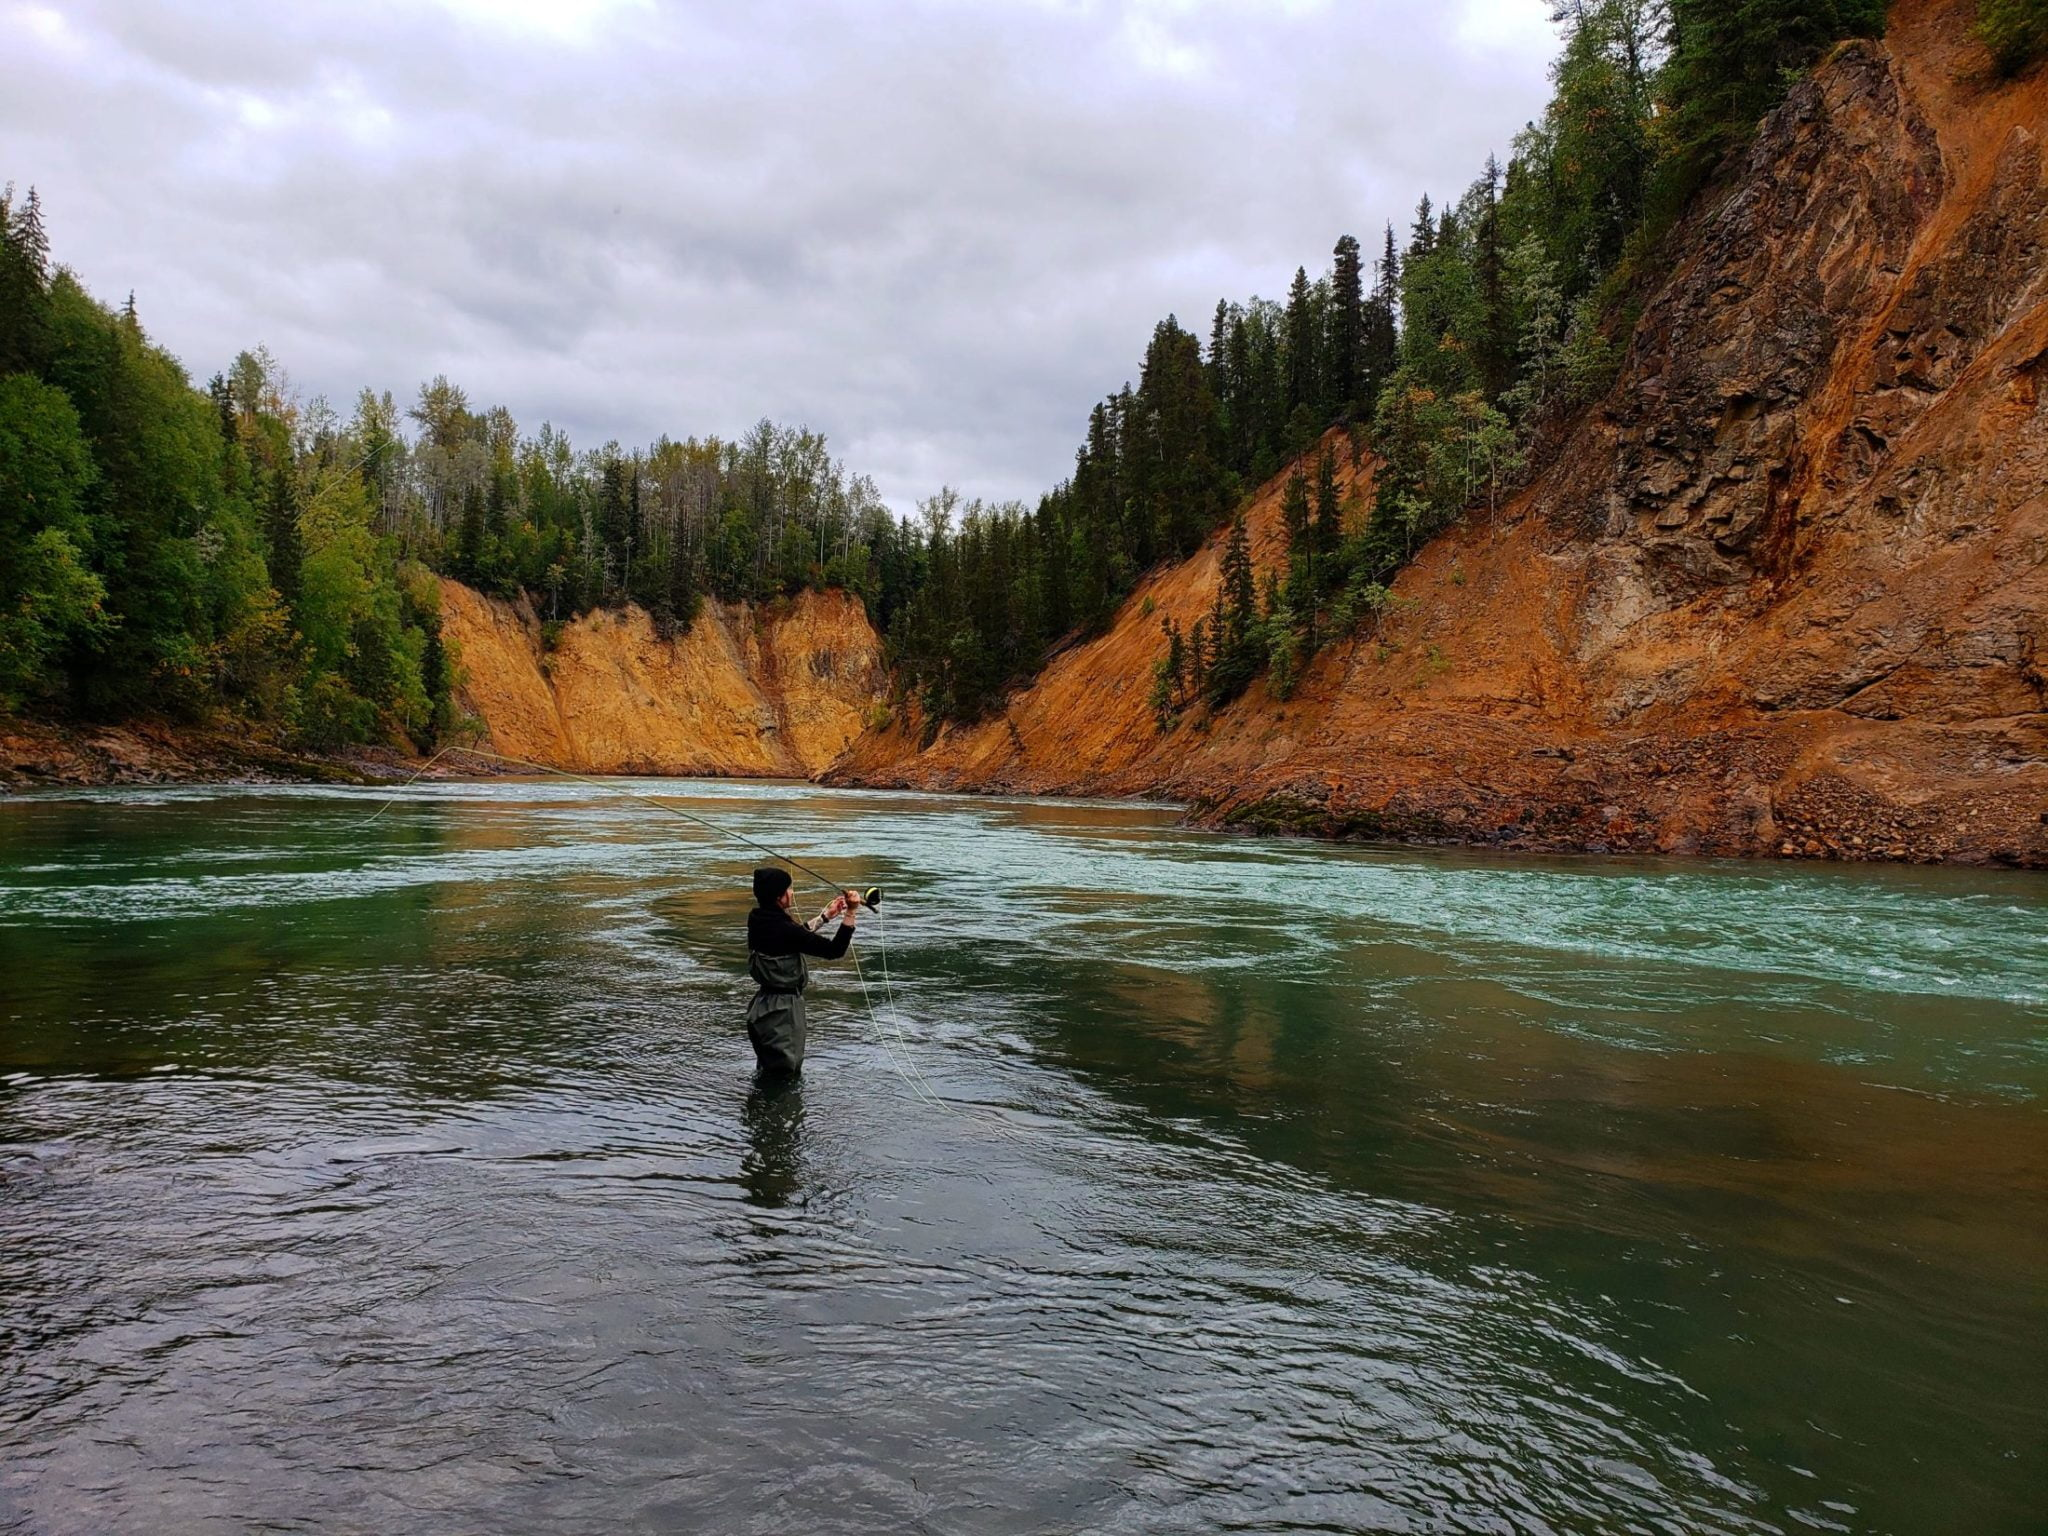 Woman fishing in a river in BC